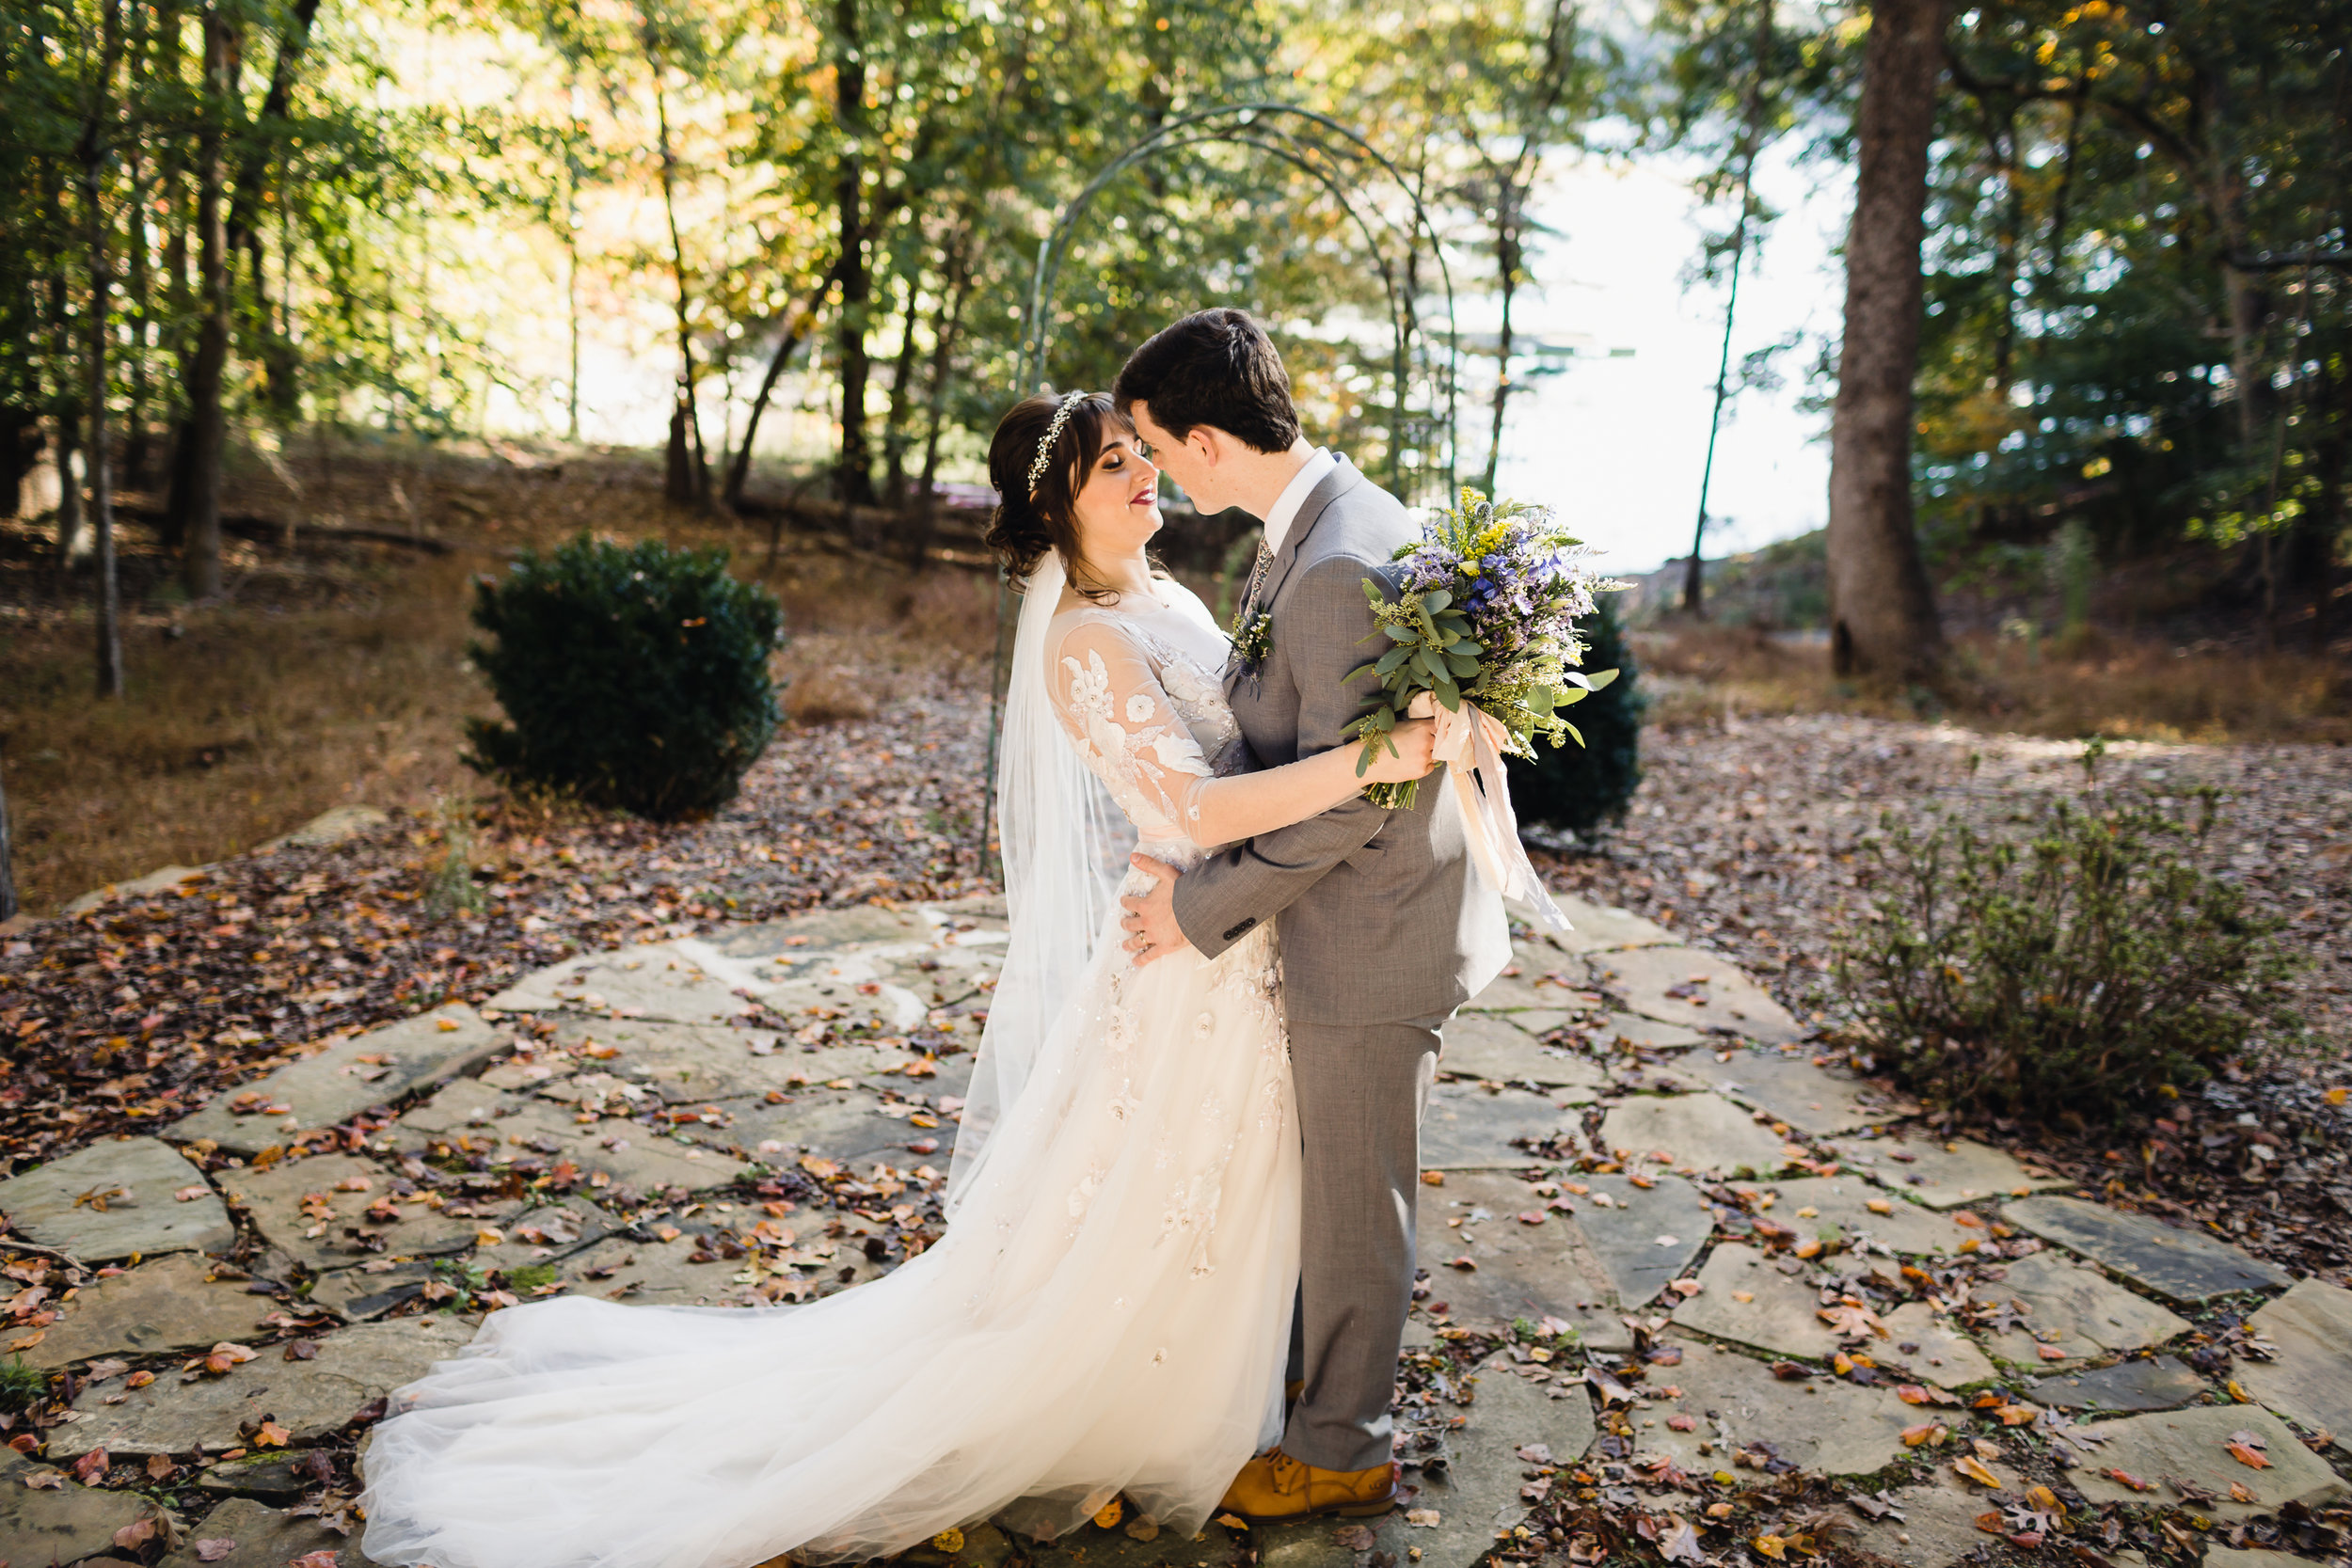 Gianna Keiko Atlanta NY Brooklyn Wedding Photographer-27.jpg